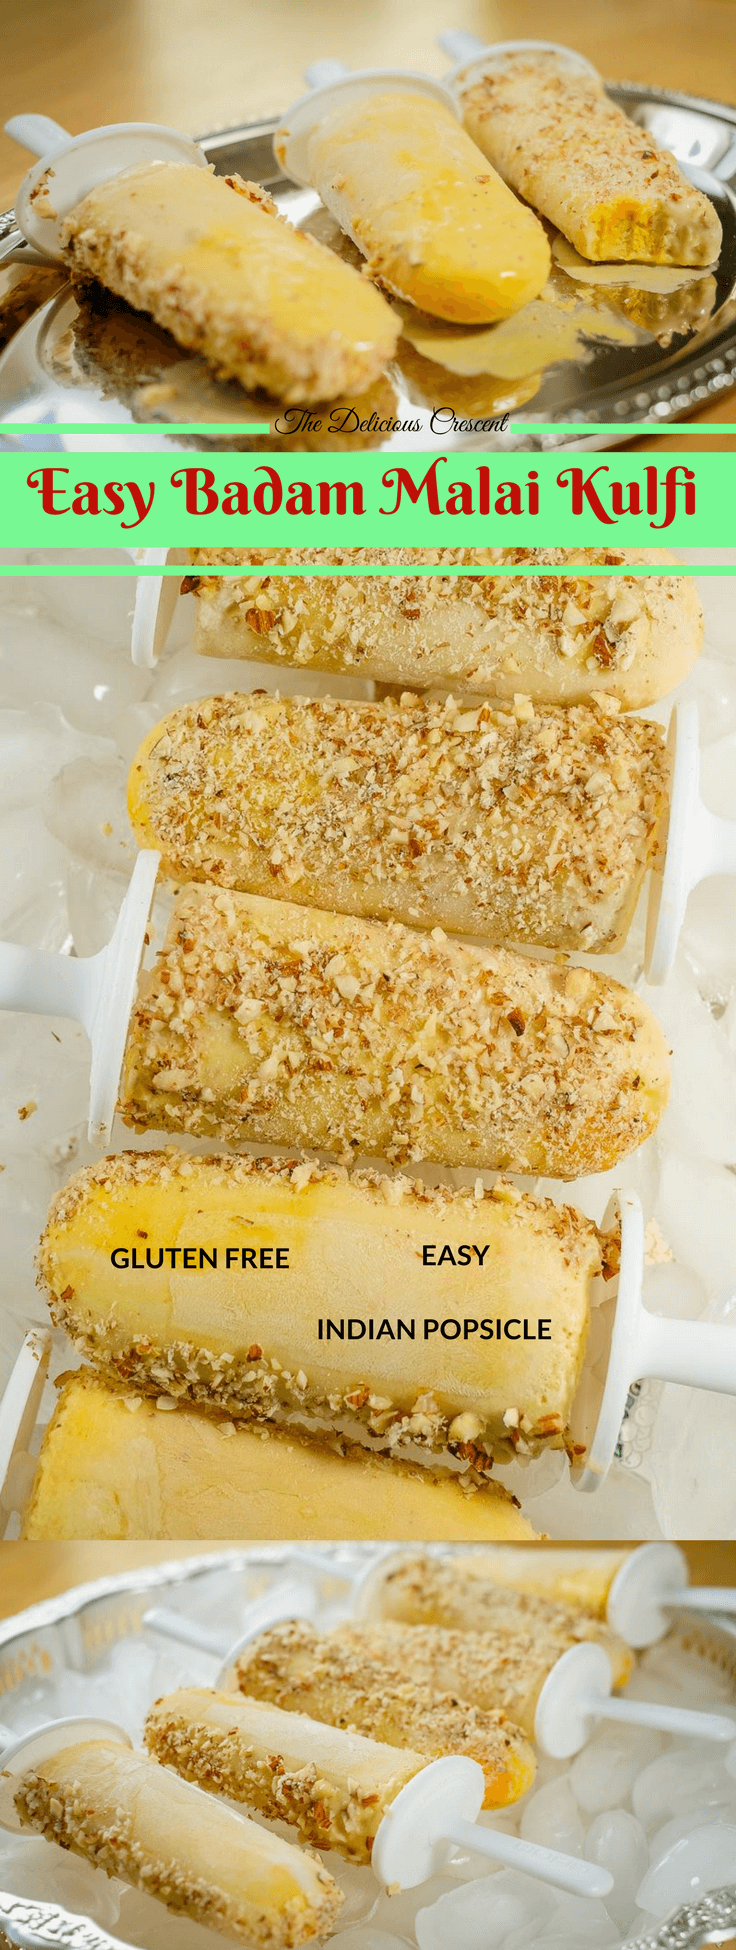 Badam malai kulfi, a traditional Indian popsicle, amazingly easy recipe, with mouth watering creamy taste, fragrant flavors of almond, rose, saffron. With less added sugar and saturated fat but more protein. #kulfi #popsicle #glutenfree #dessert #Indianfood